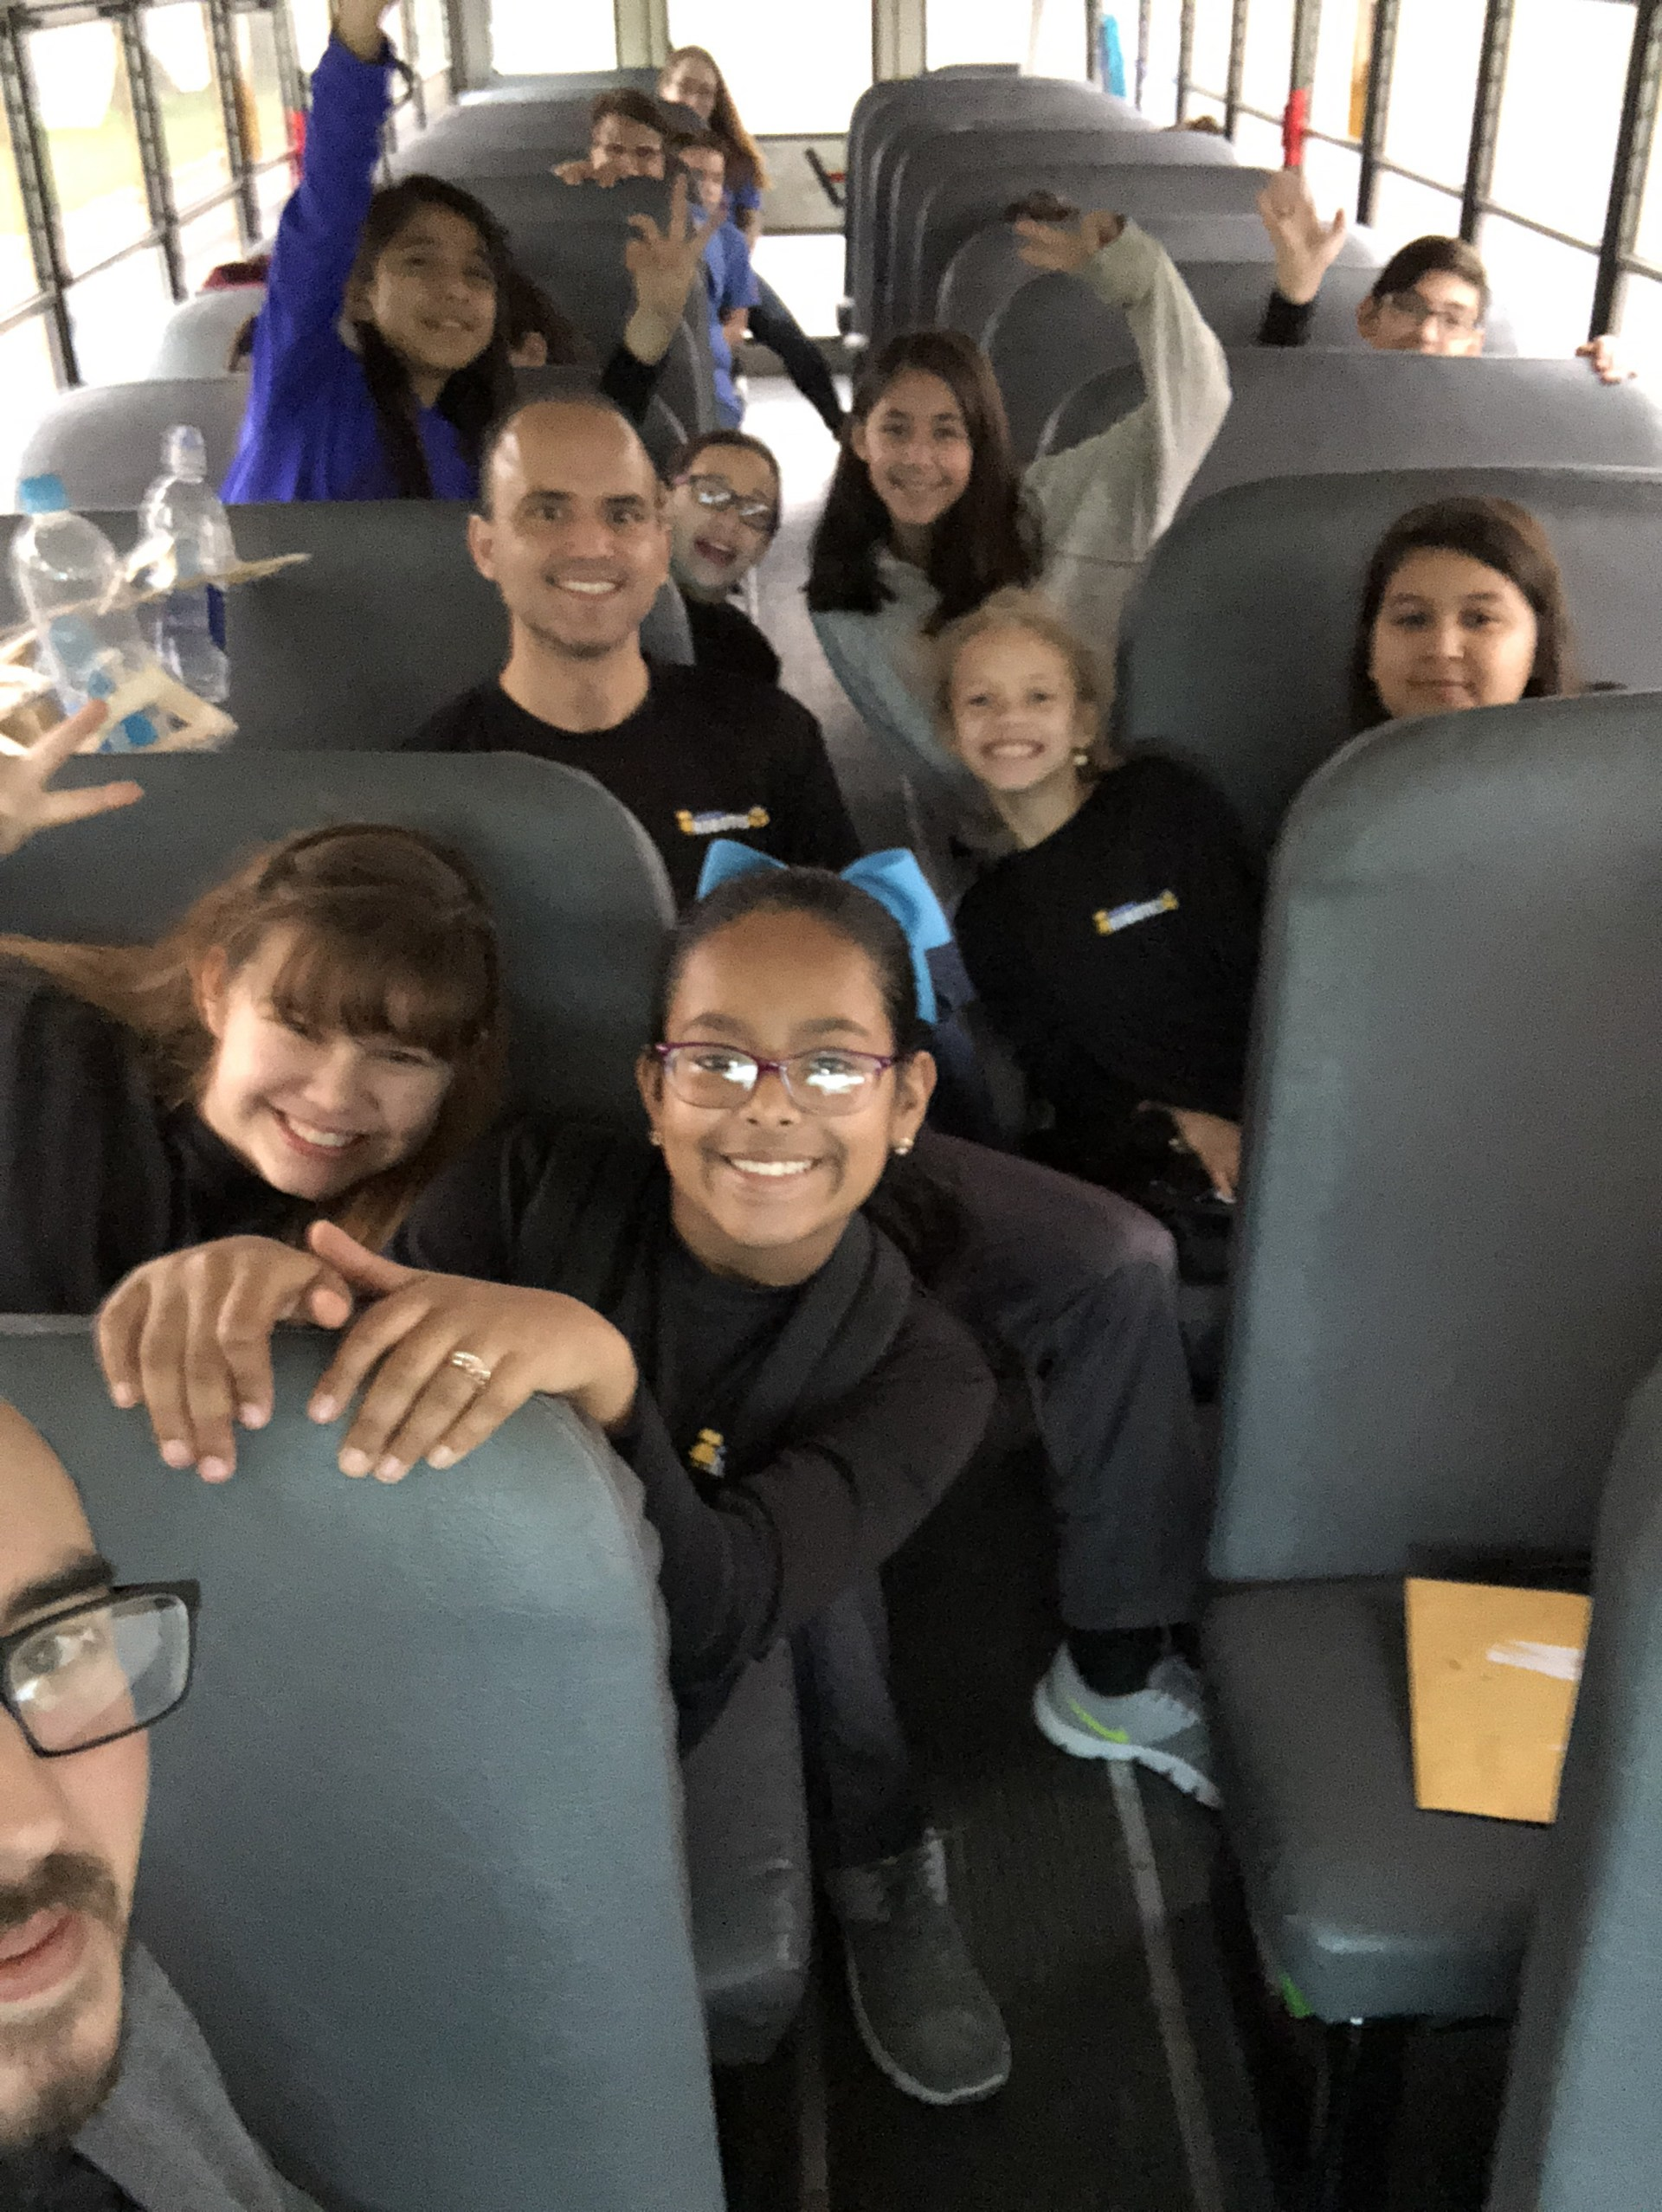 Robotics team on their way to a competition